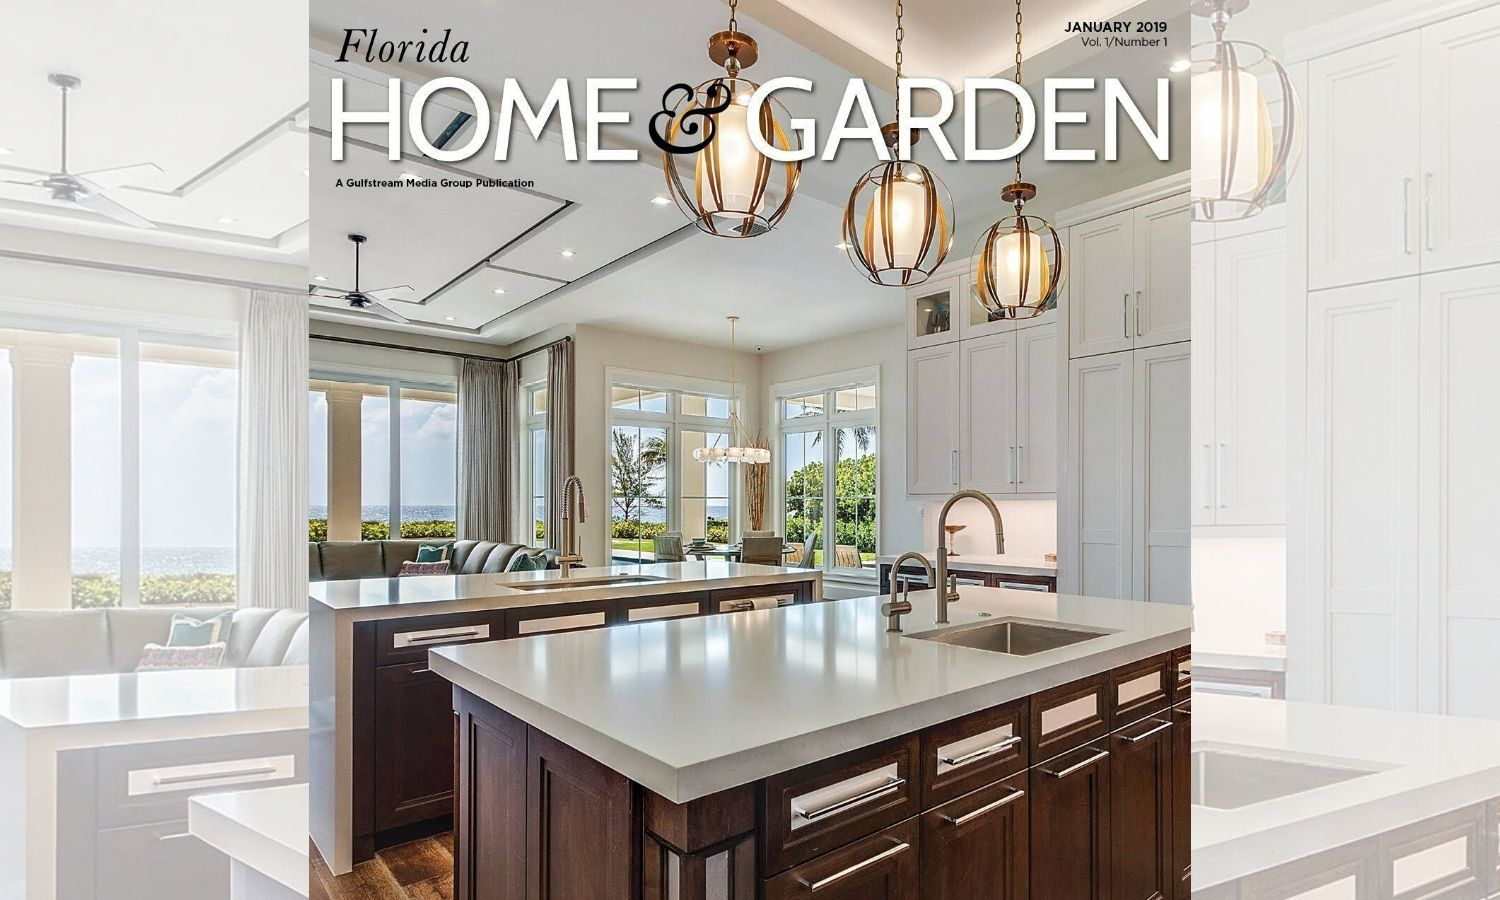 Elegant Strand featured in Florida Home & Garden: PREMIER DESIGN PORTFOLIOS